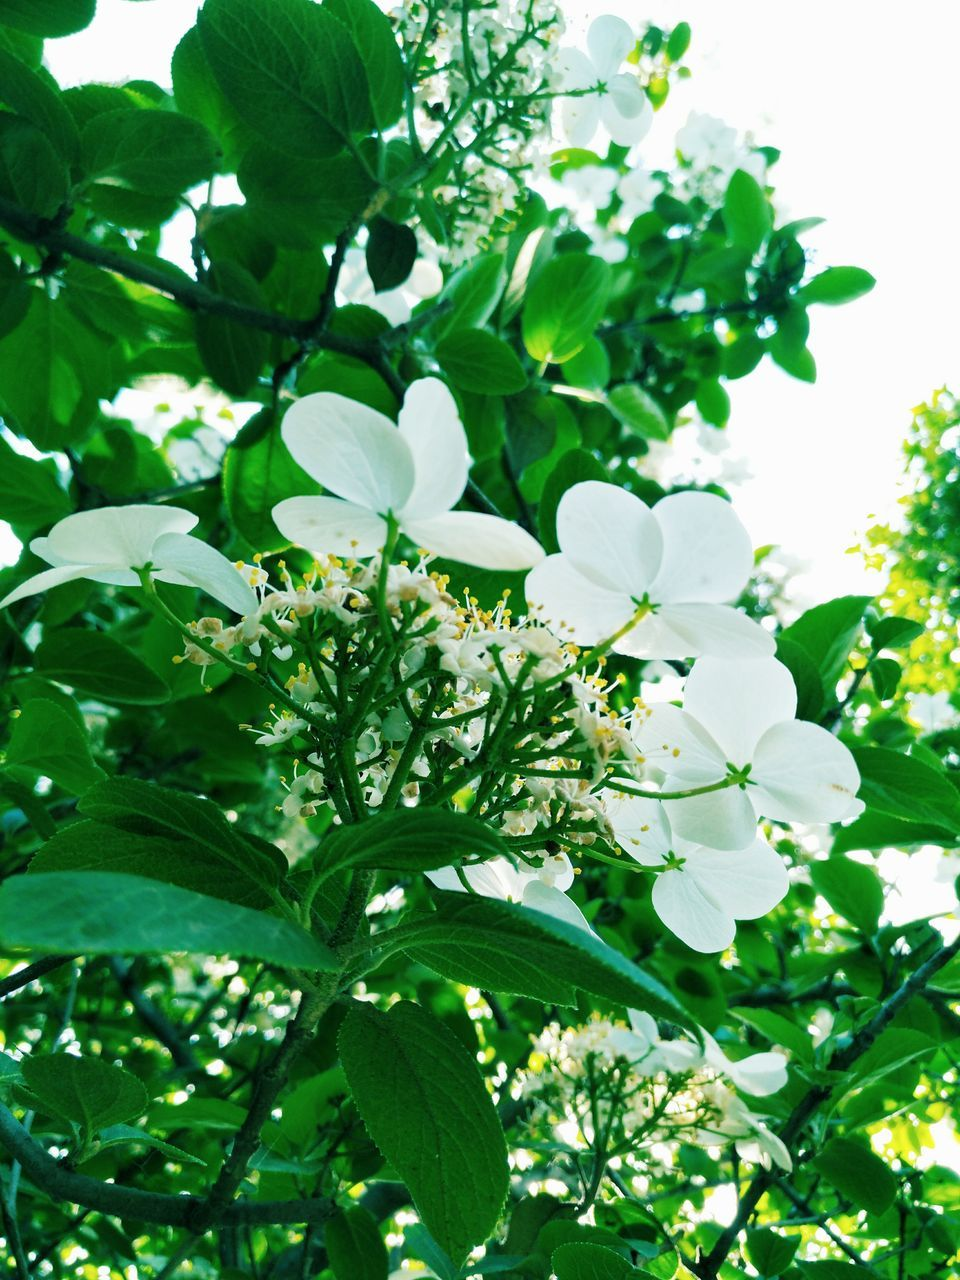 growth, flower, white color, fragility, leaf, nature, beauty in nature, freshness, petal, plant, no people, green color, tree, day, outdoors, springtime, branch, blooming, close-up, flower head